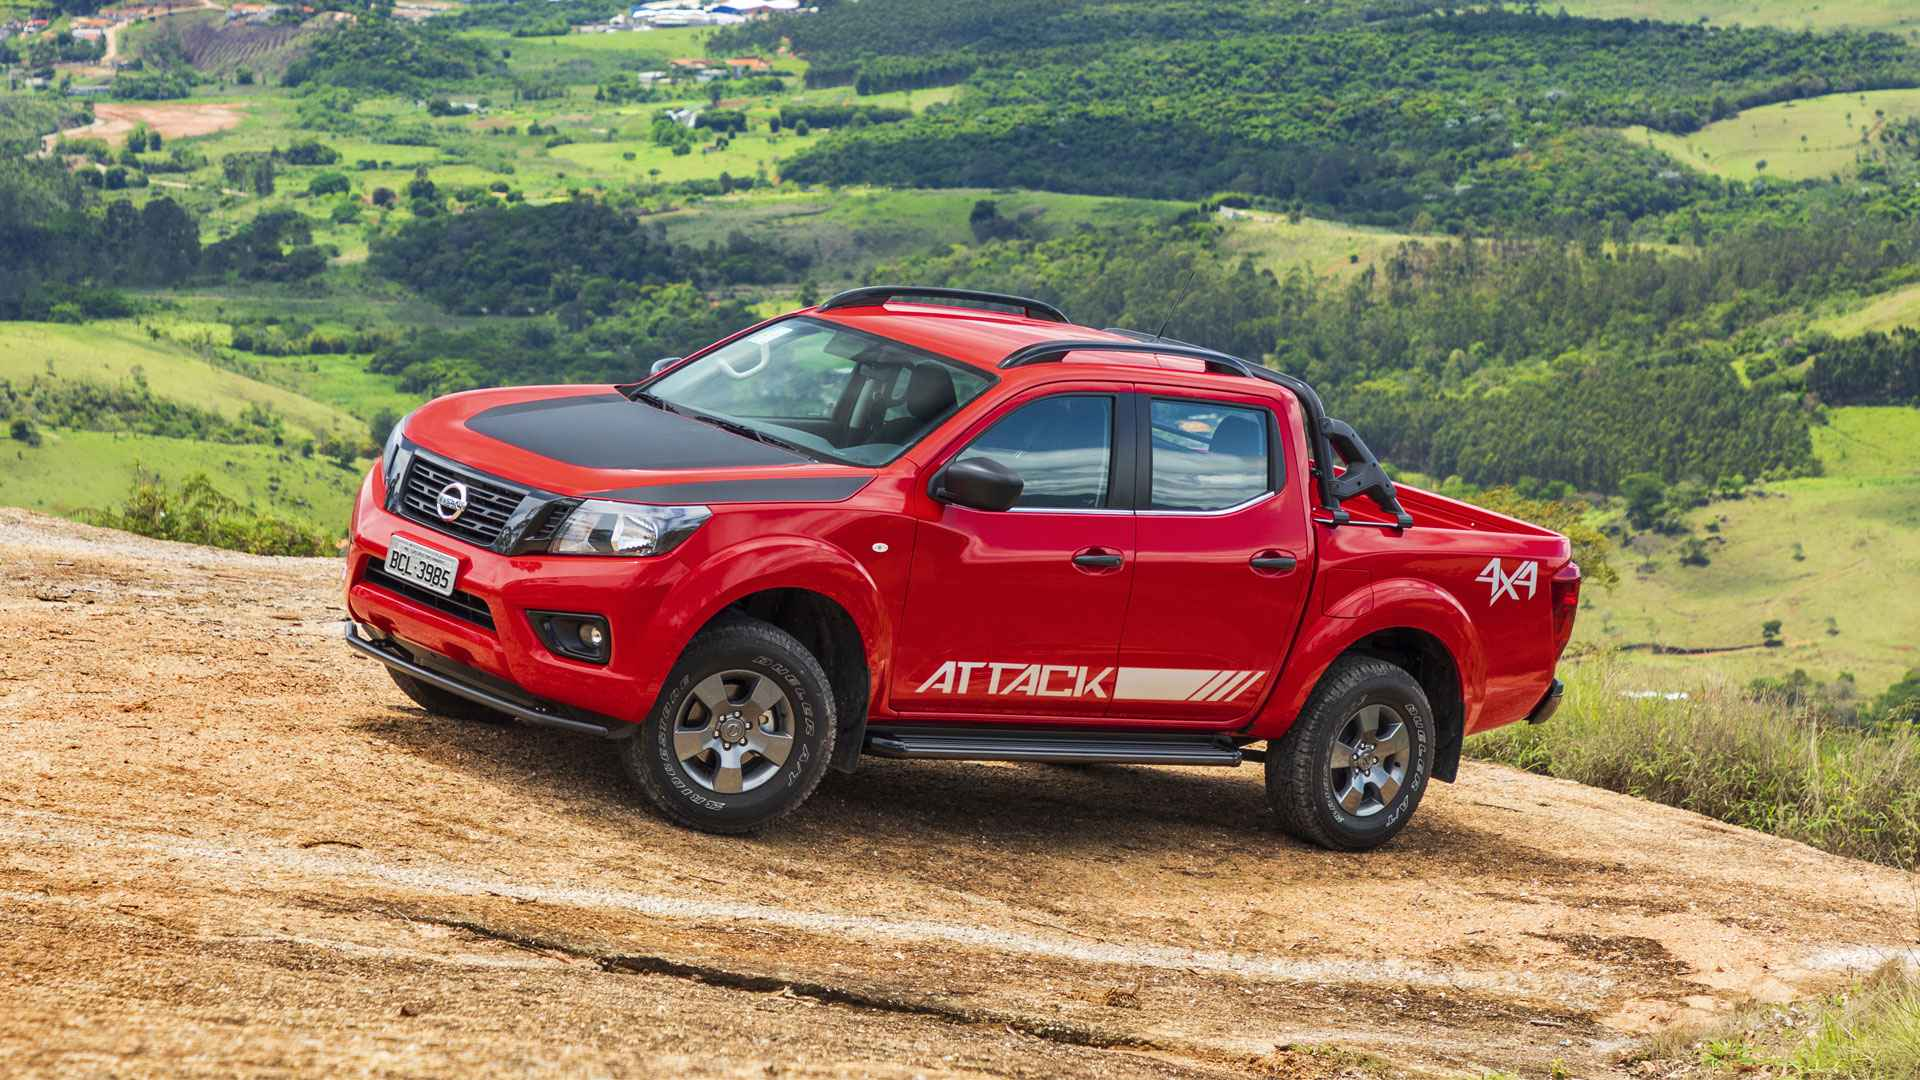 nissan-frontier-attack-4x4-2019